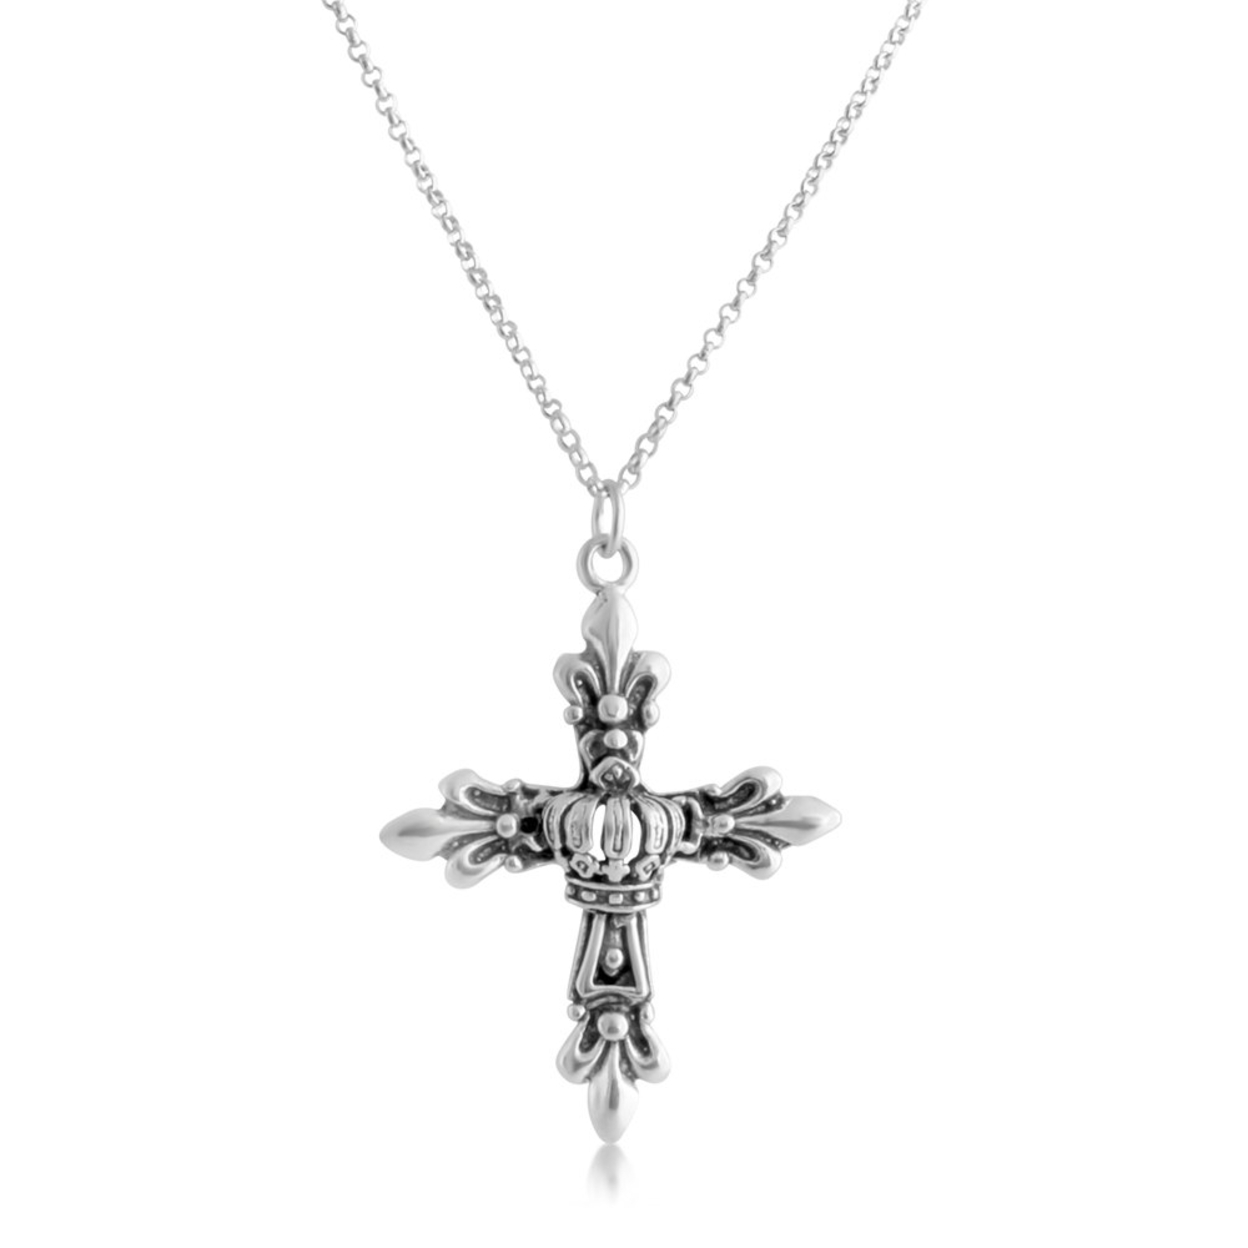 Royal Fleur De Lis Cross French Lily Flower European Symbol Christian Religious Charm Pendant Necklace #925 Sterling Silver #azaggi N0662s 12 Child